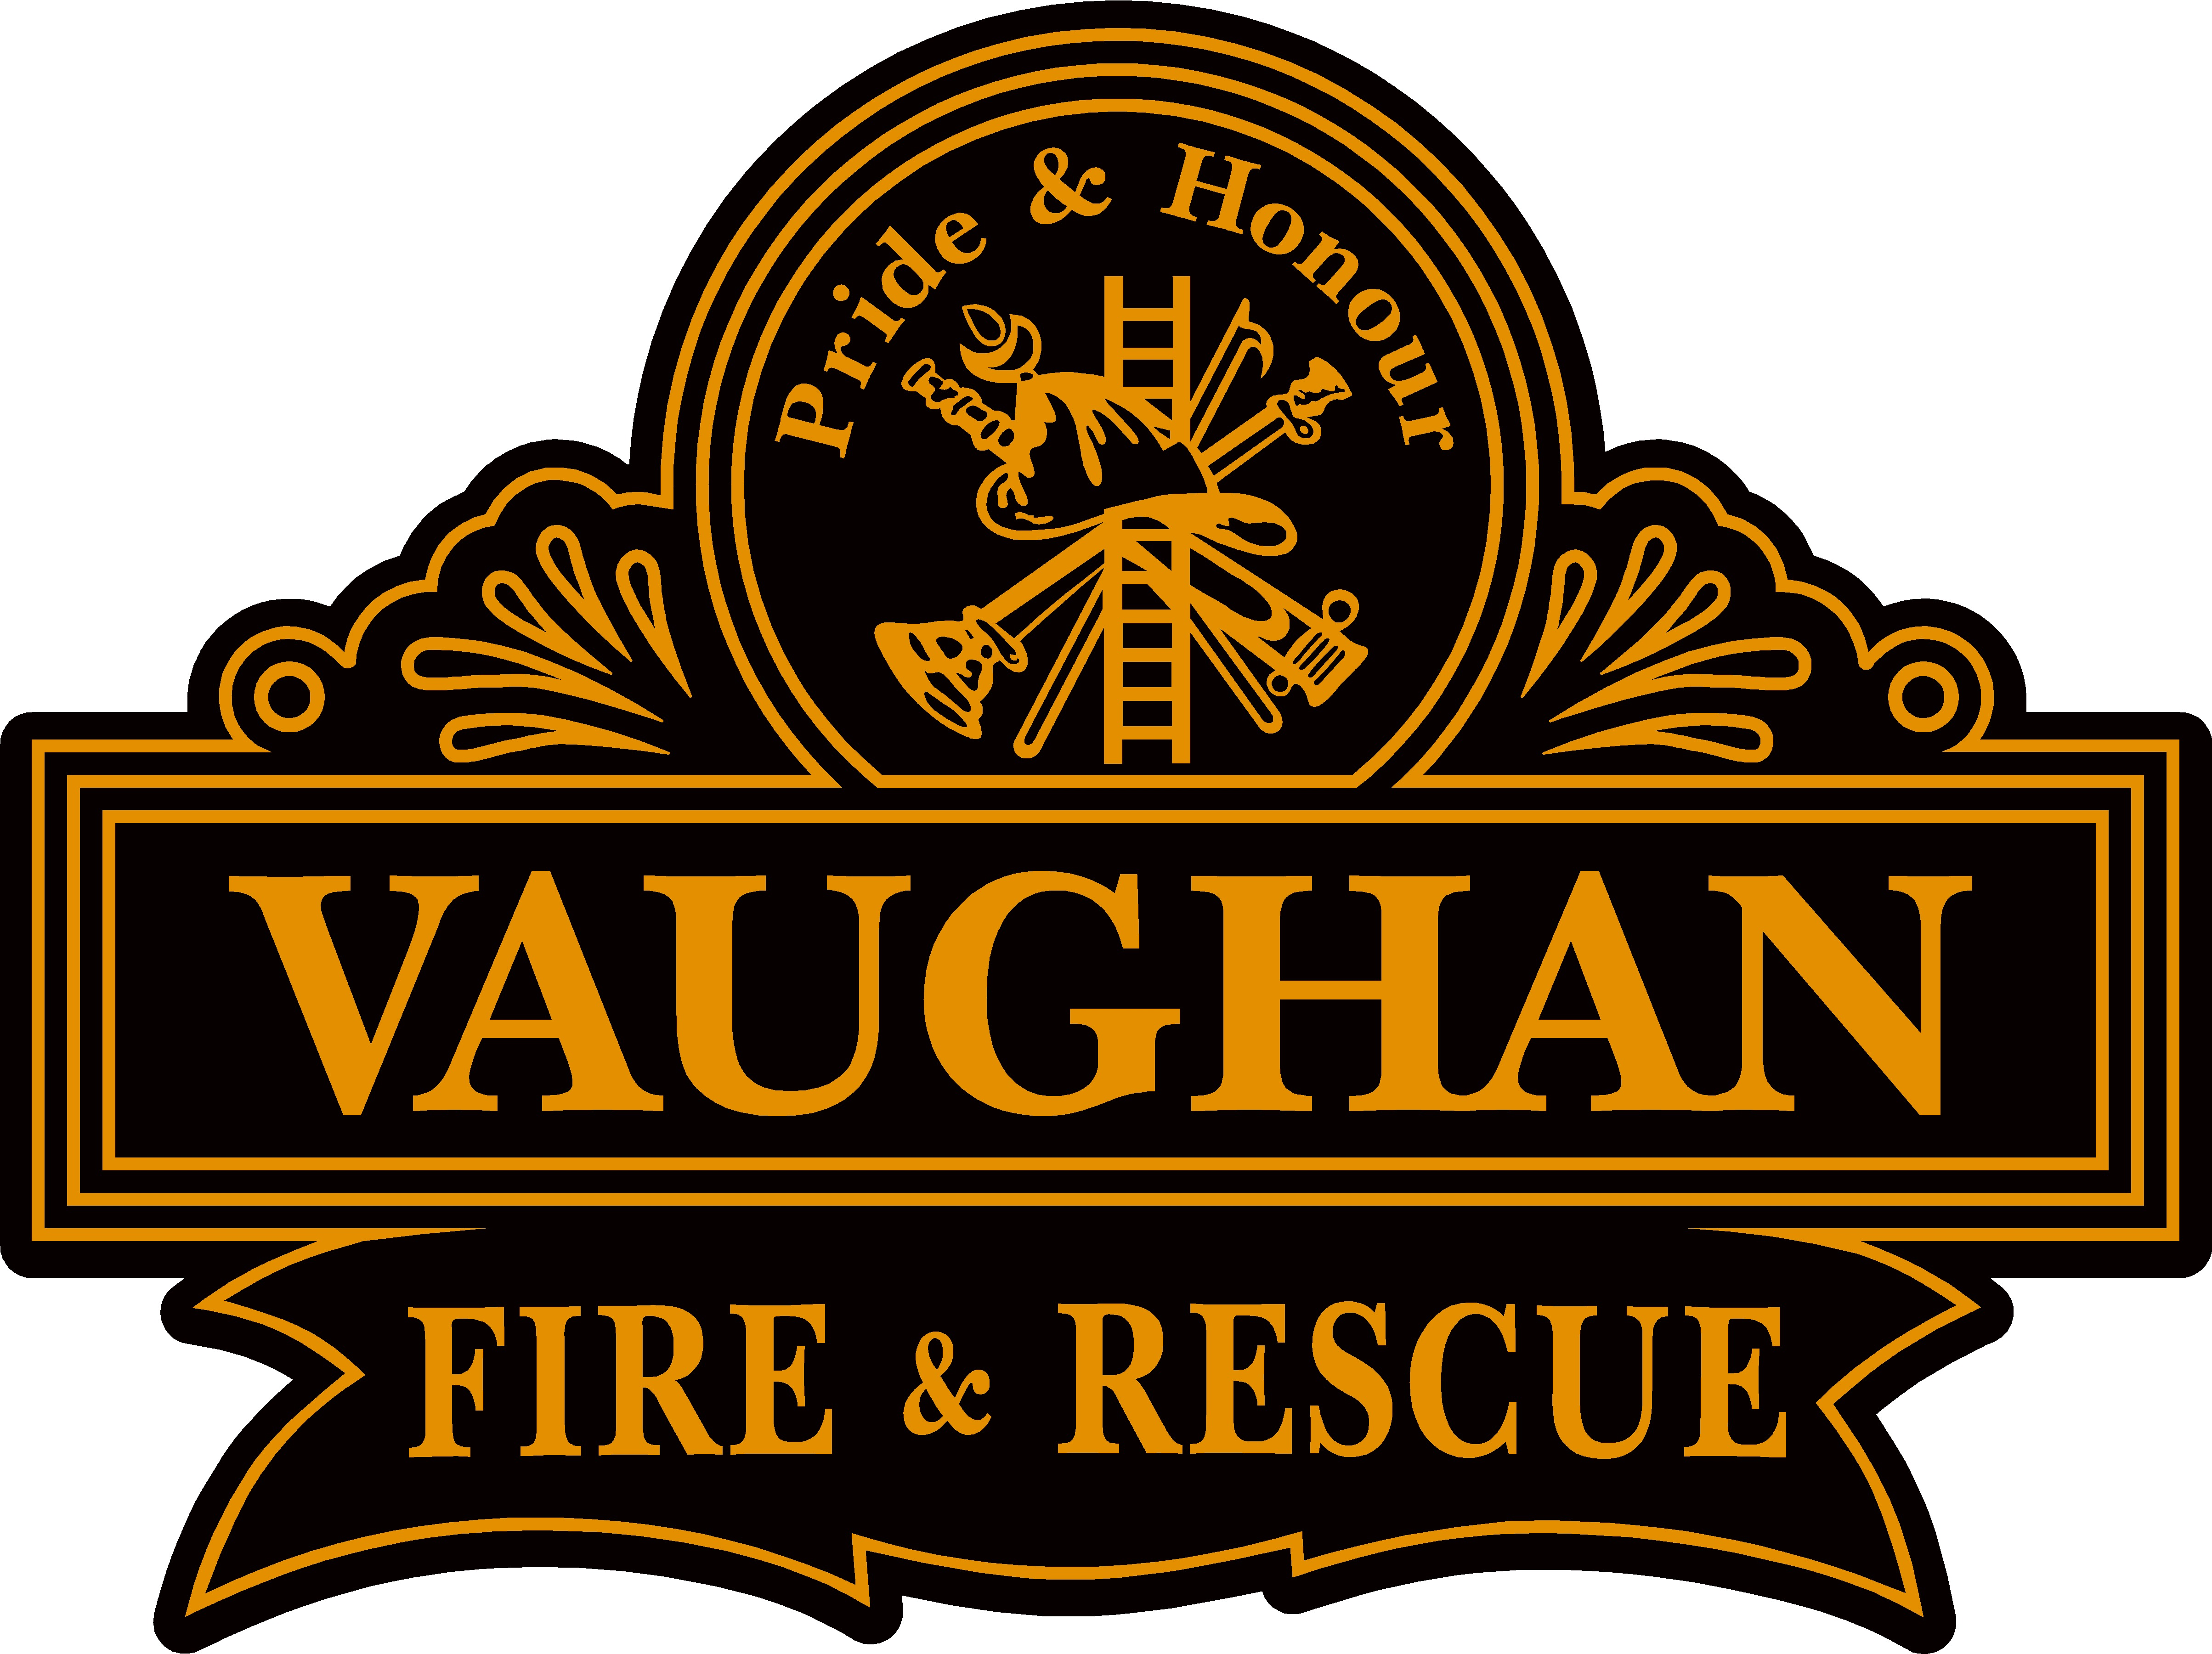 Vaughan Fire and Rescue Service crest image